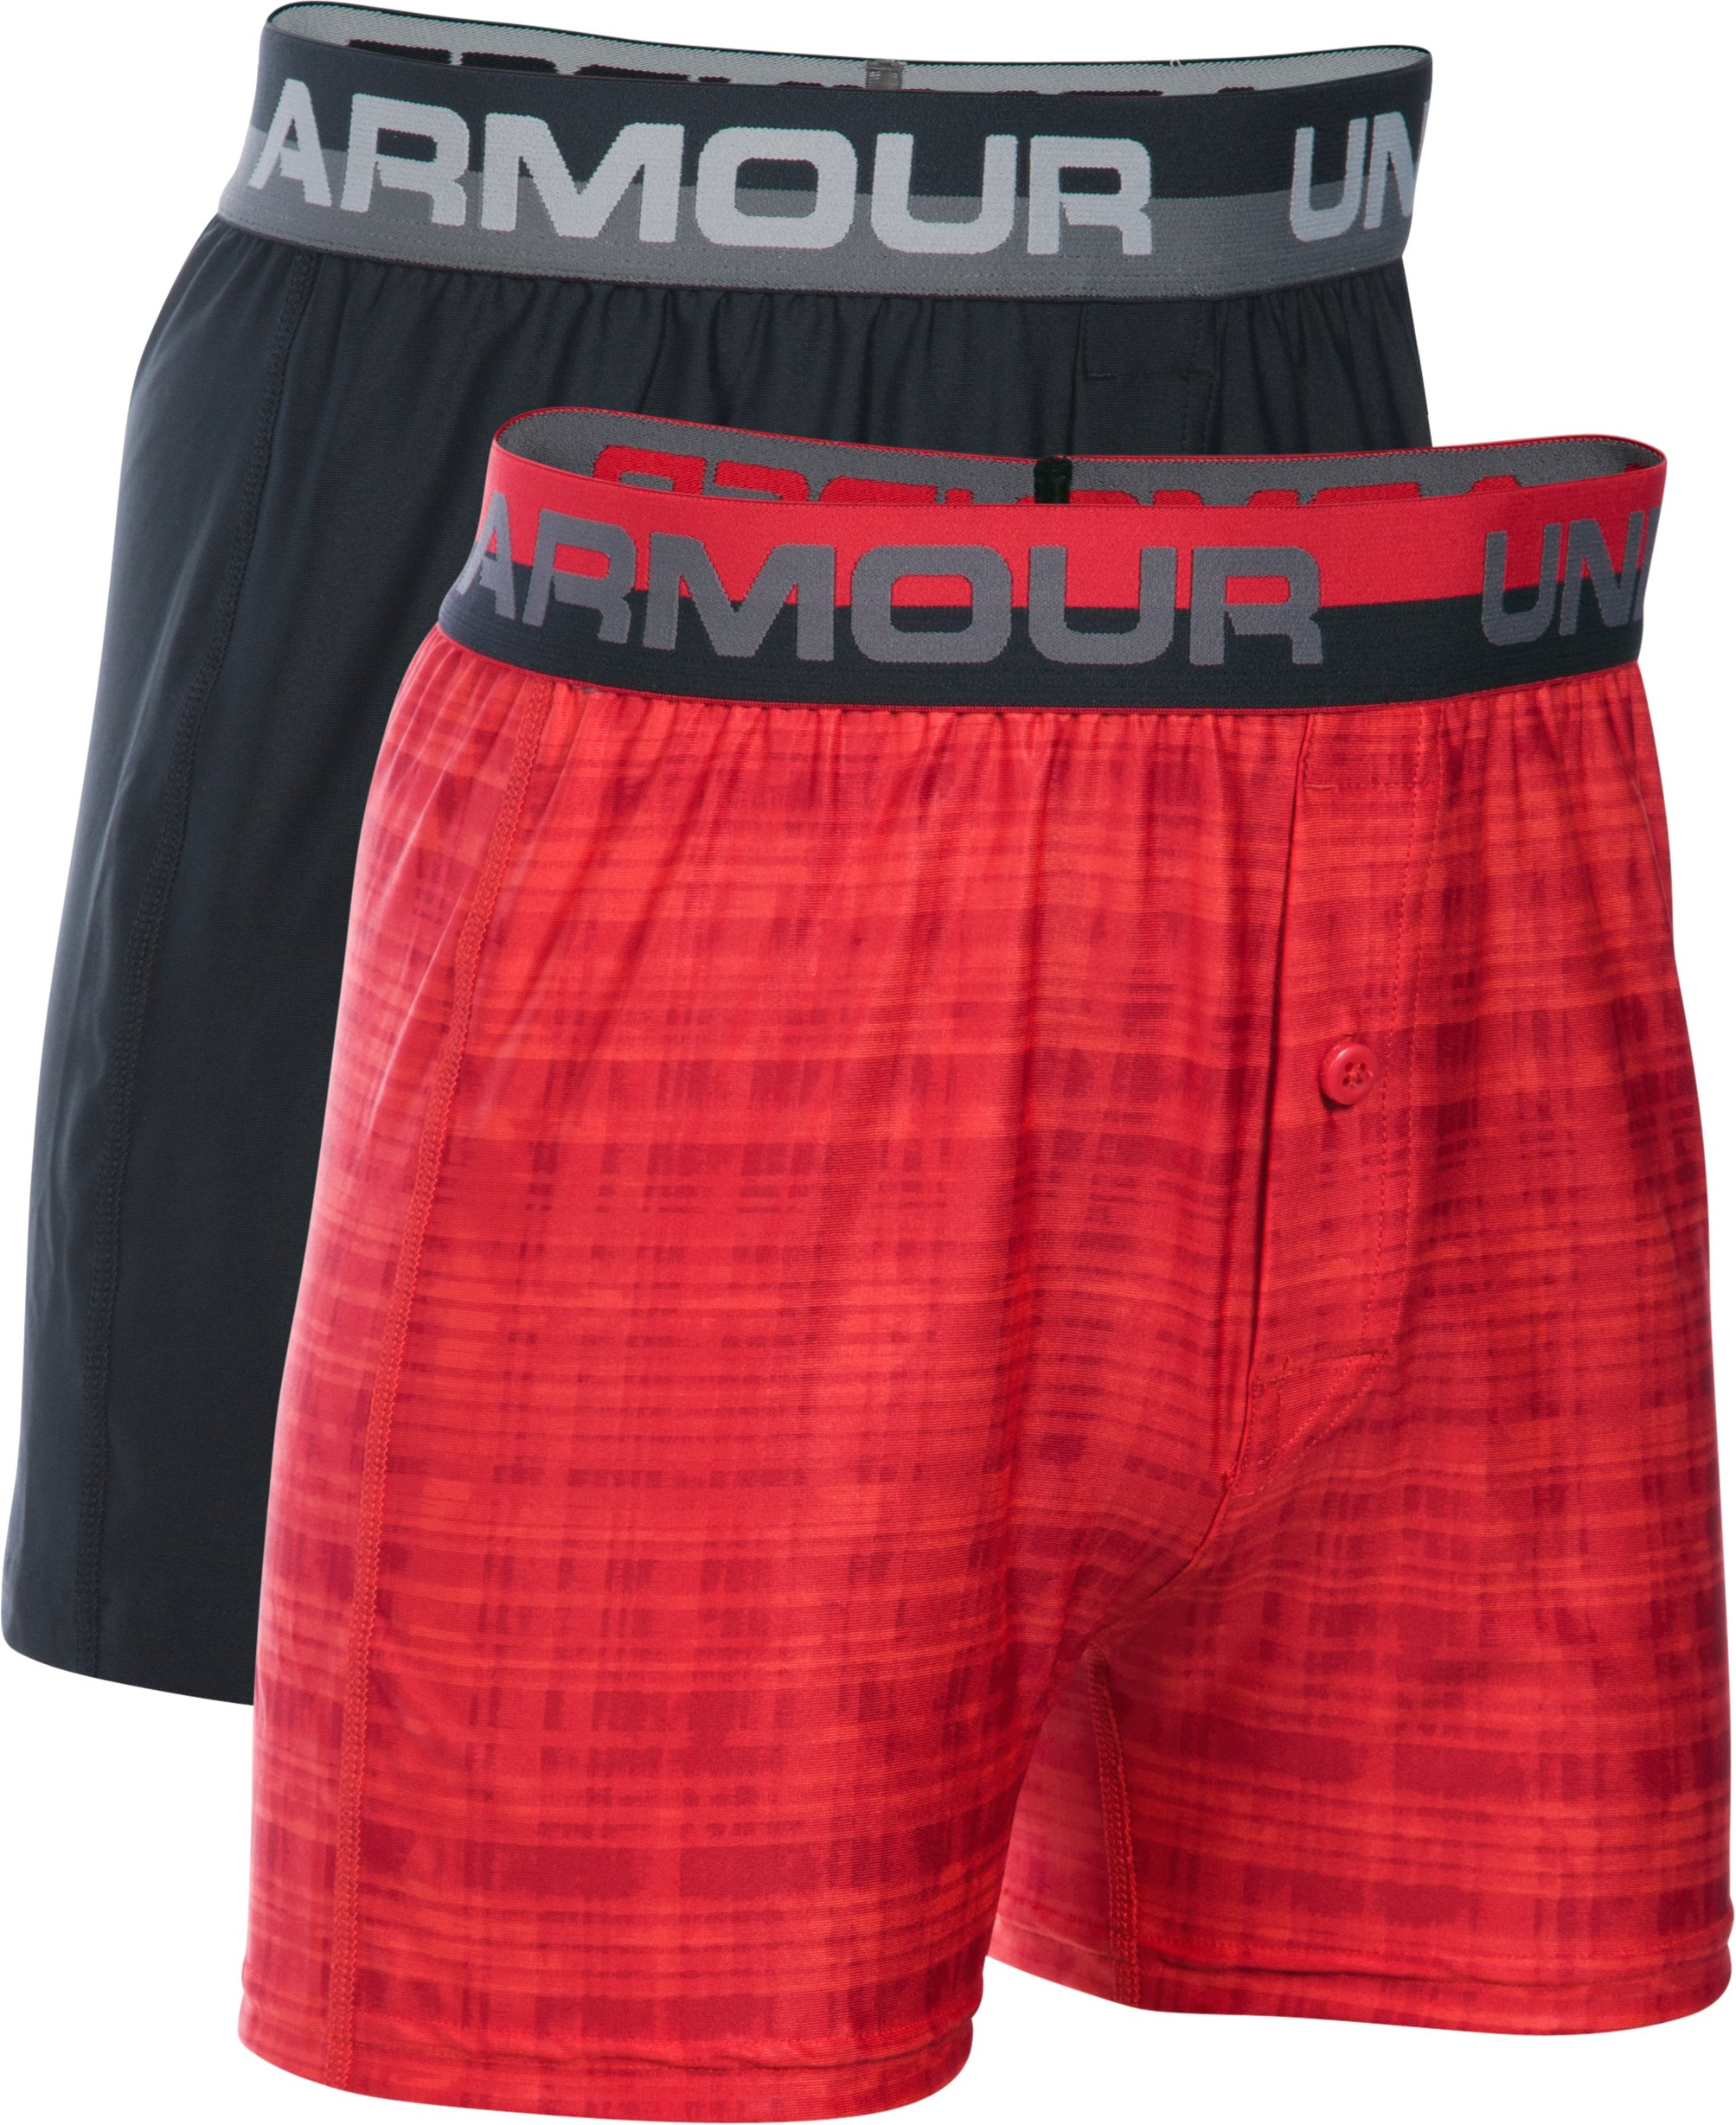 Boys' UA Original Series Boxer Shorts 2-Pack, Sultry